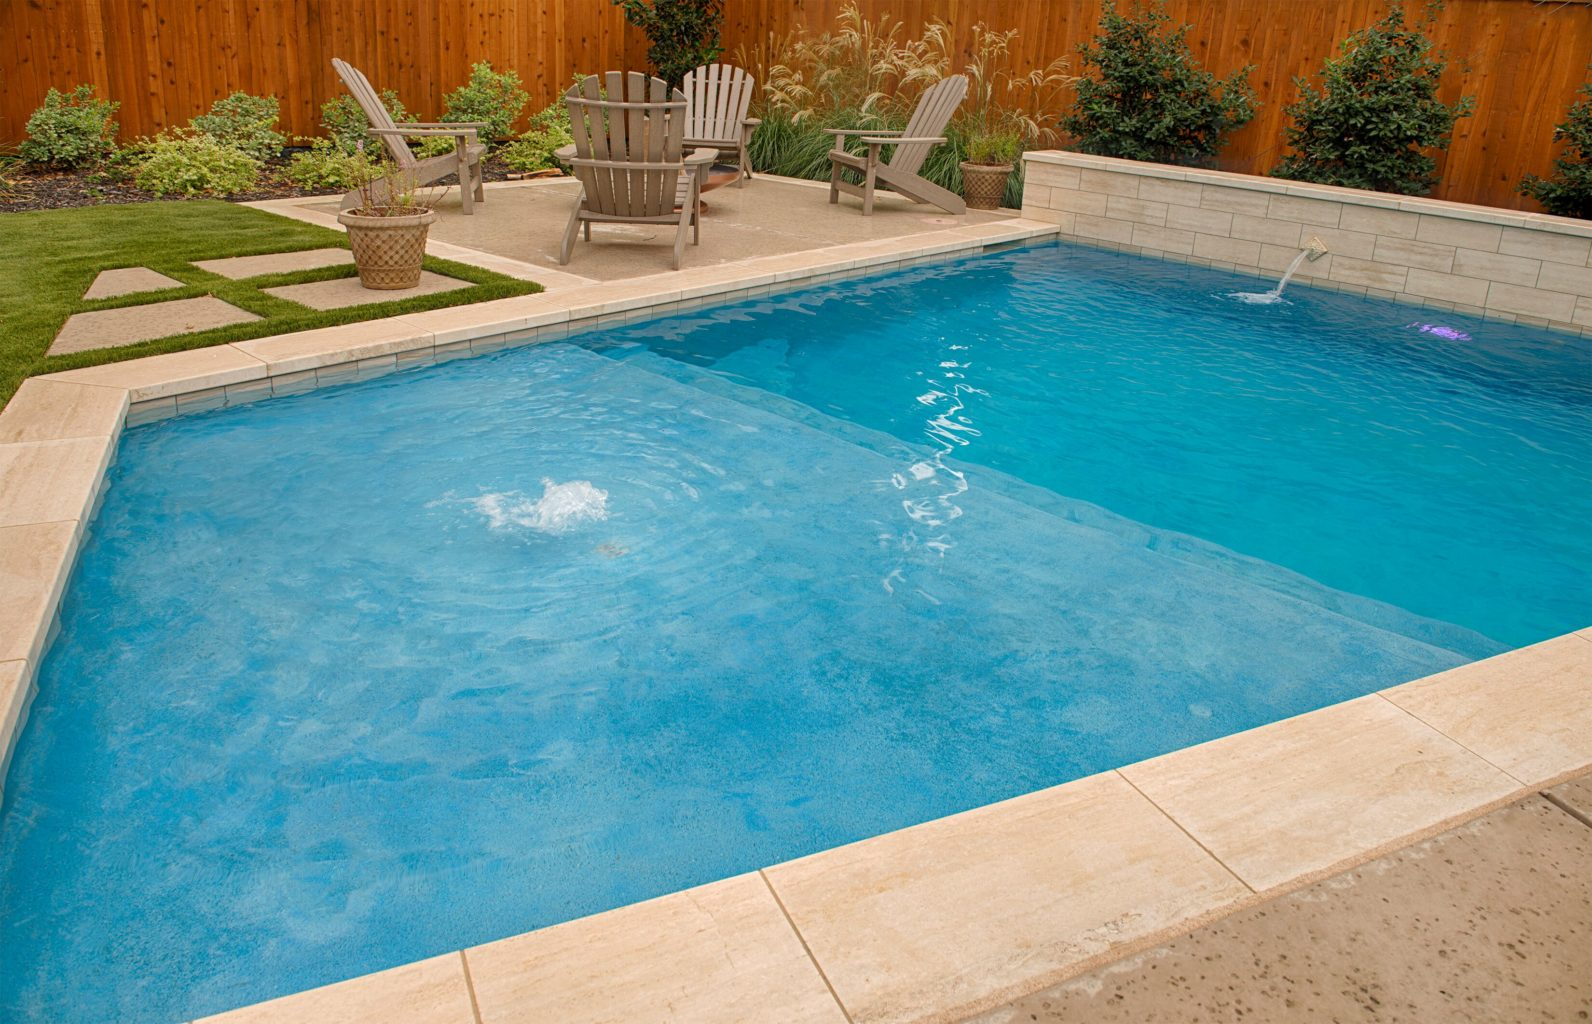 This pool includes a splash pad with bubbler. Bubblers are fun additions to any swimming pool and present a nice aesthetic for your onlookers and guests.